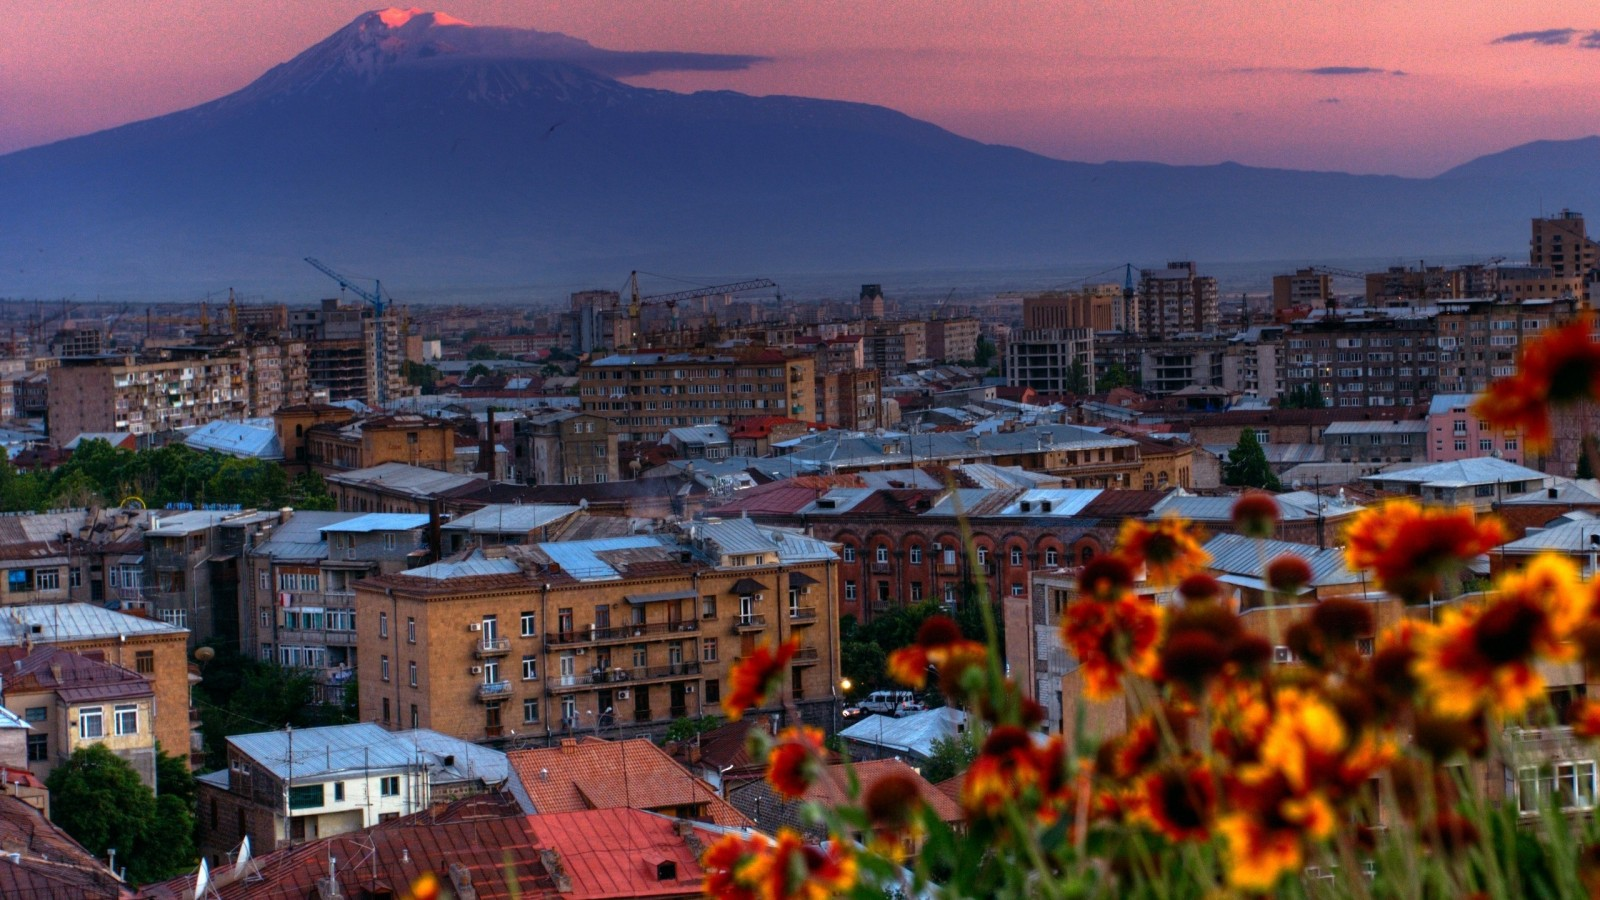 Yerevan-City-Armenia.jpg